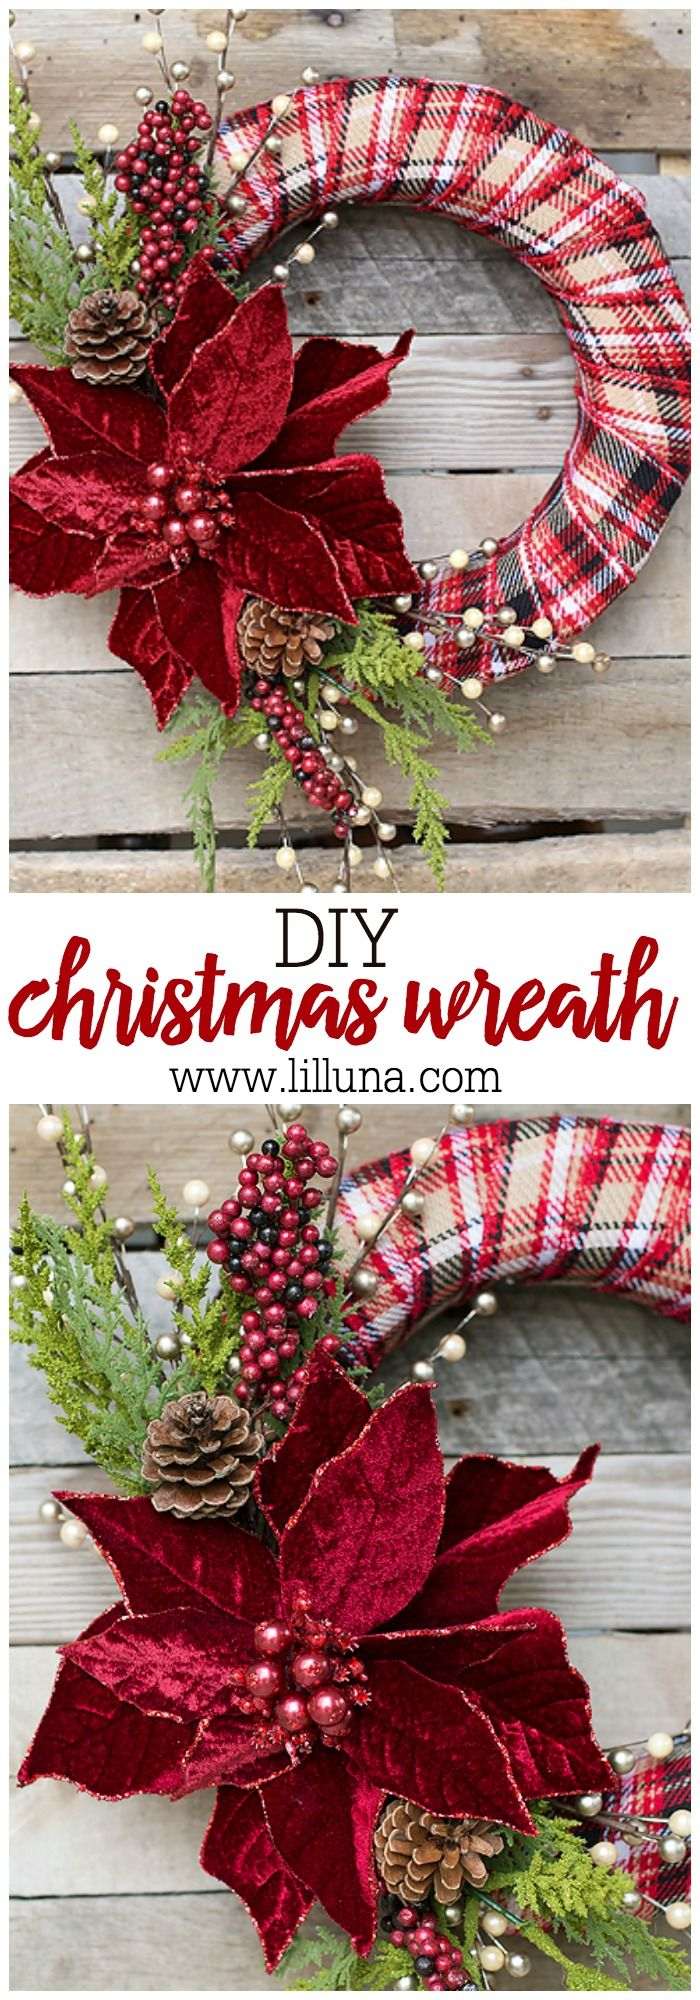 DIY Christmas Wreath - Get crafty with this beautiful and festive wreath!